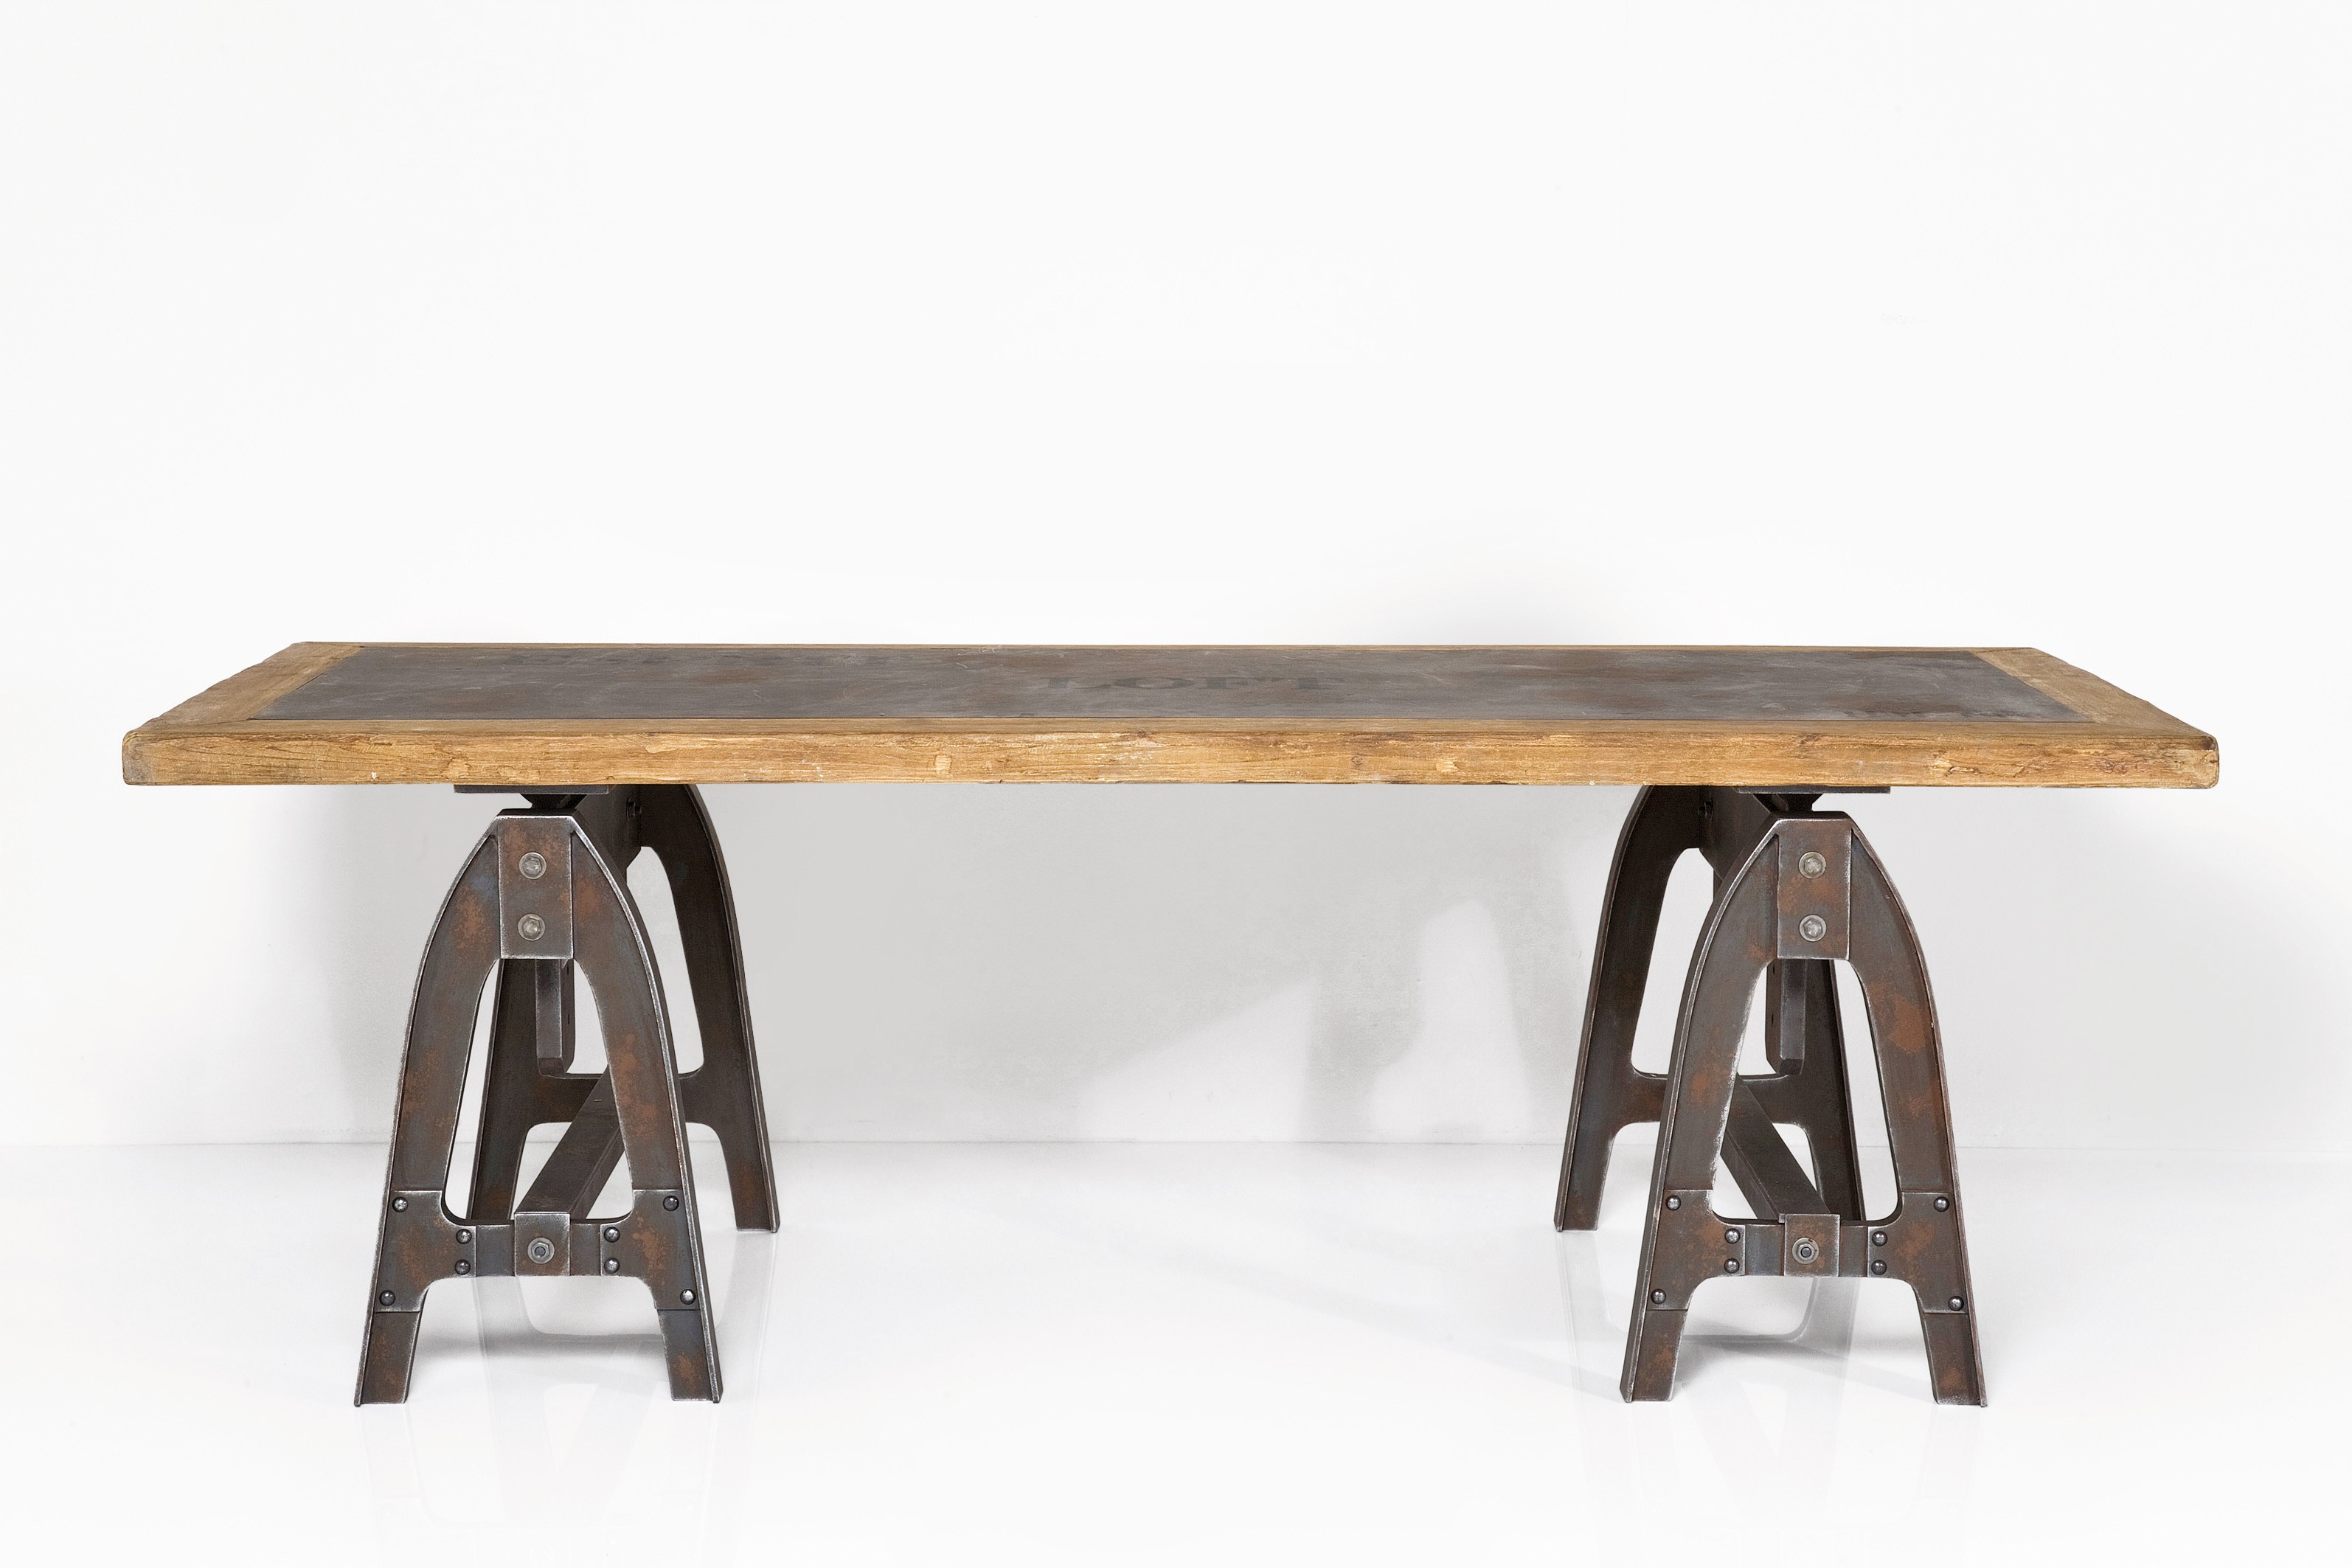 Rustic wood designer table 1700x900 with iron frame legs for Rustic iron table legs